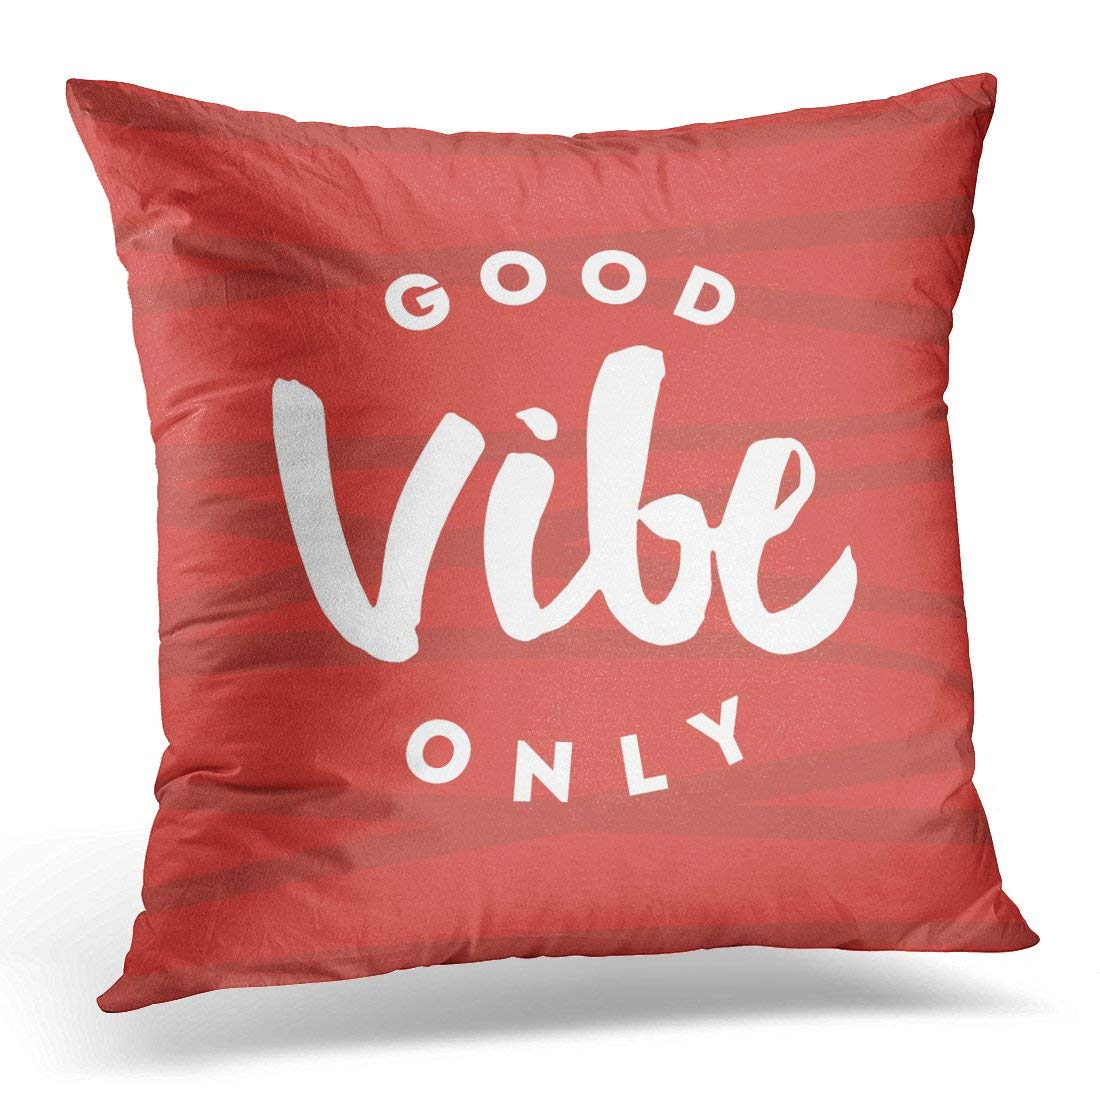 arhome white vibes good vibe only hand lettering with red brush pillow case pillow cover 18x18 inch